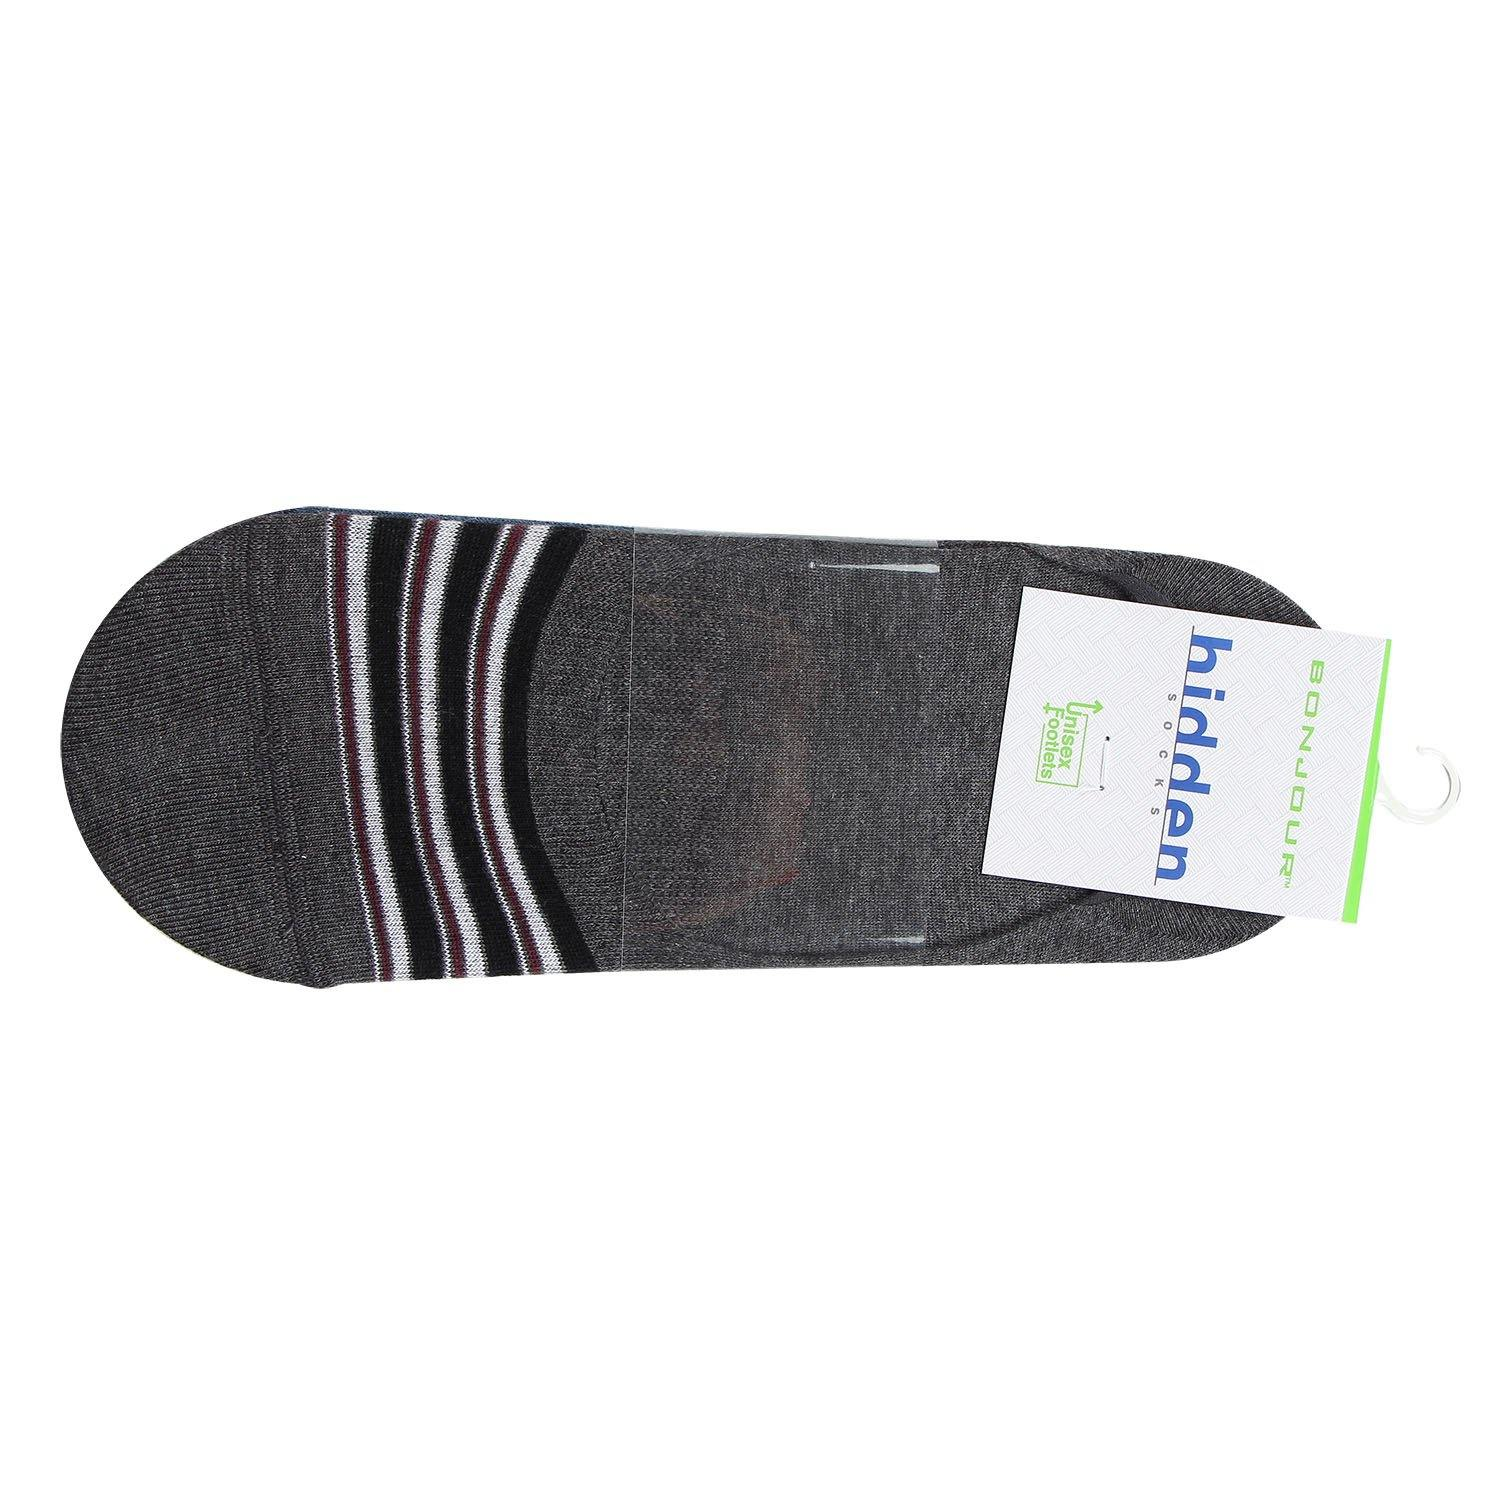 Men's Multicolored Cotton Loafer Socks - Pack Of 4